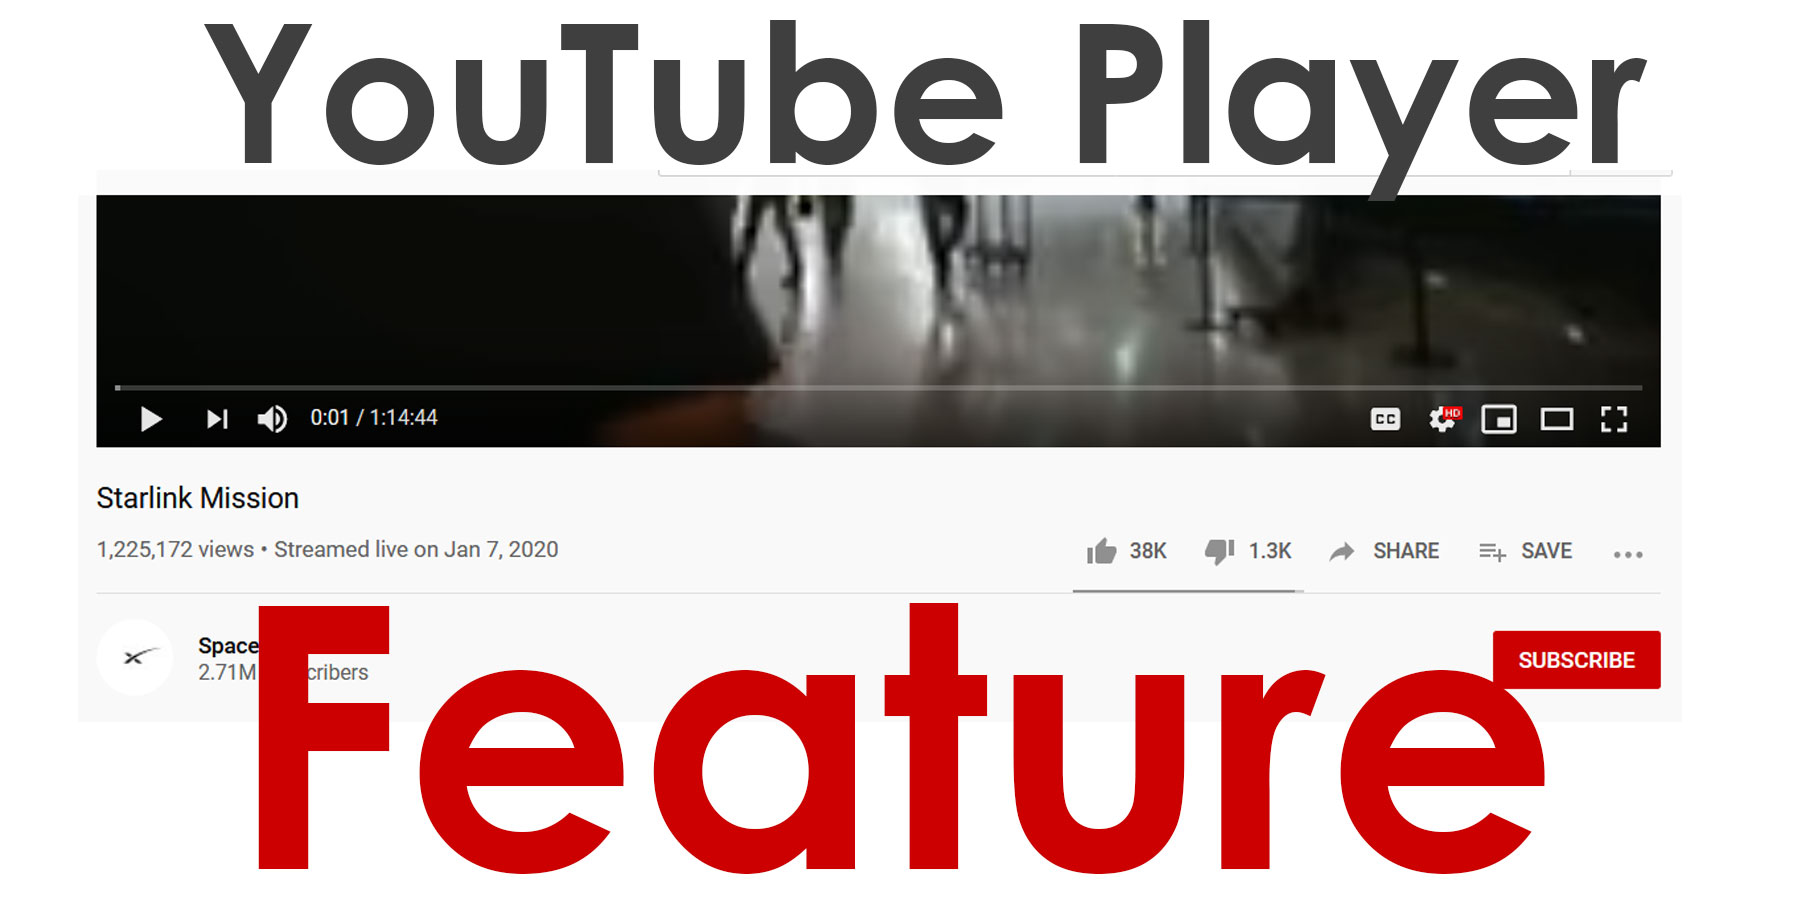 youtube player features